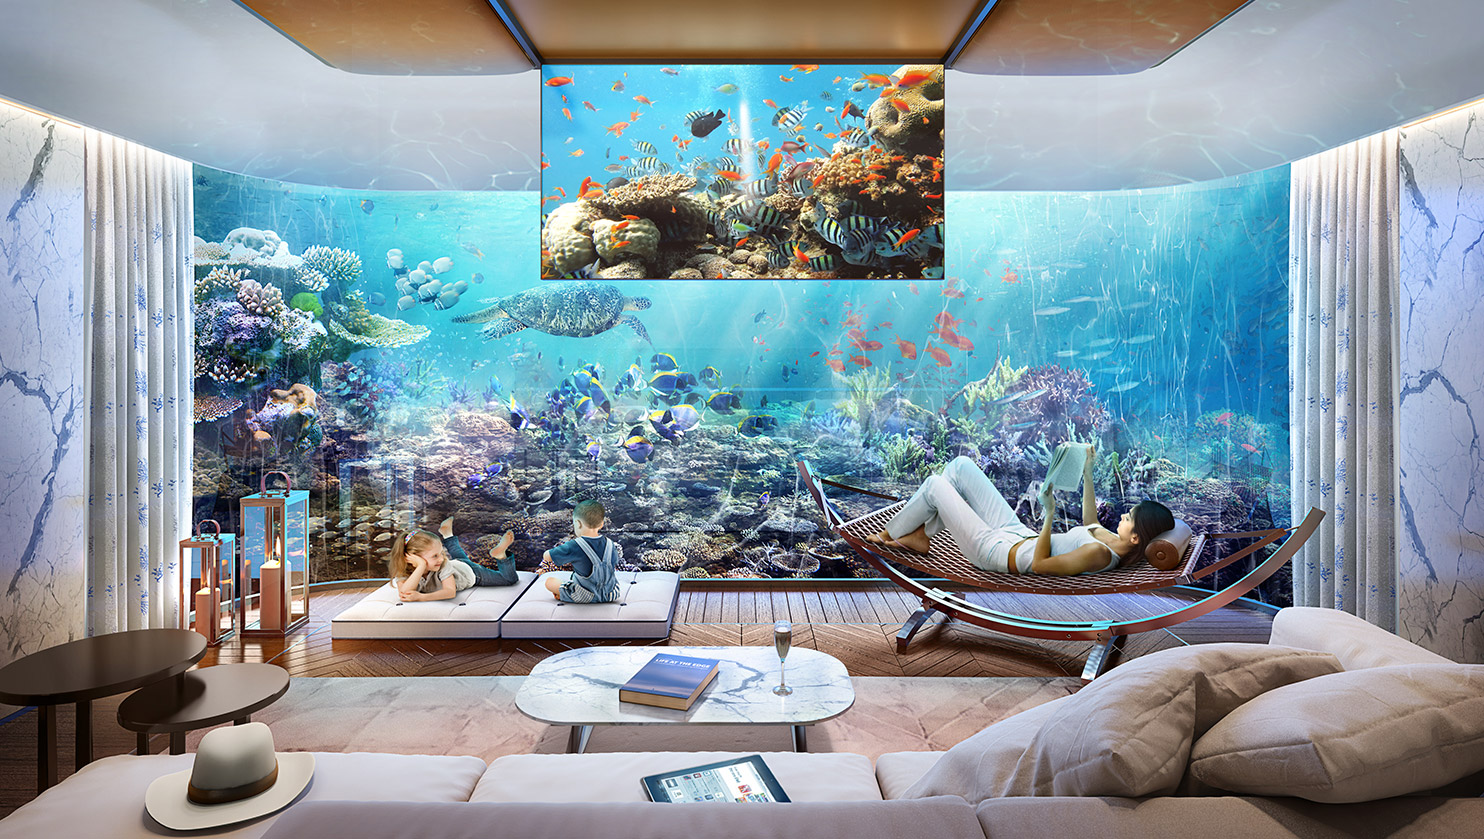 Floating Bedroom Dubais Ultra Cool Floating Homesonly 12 Million